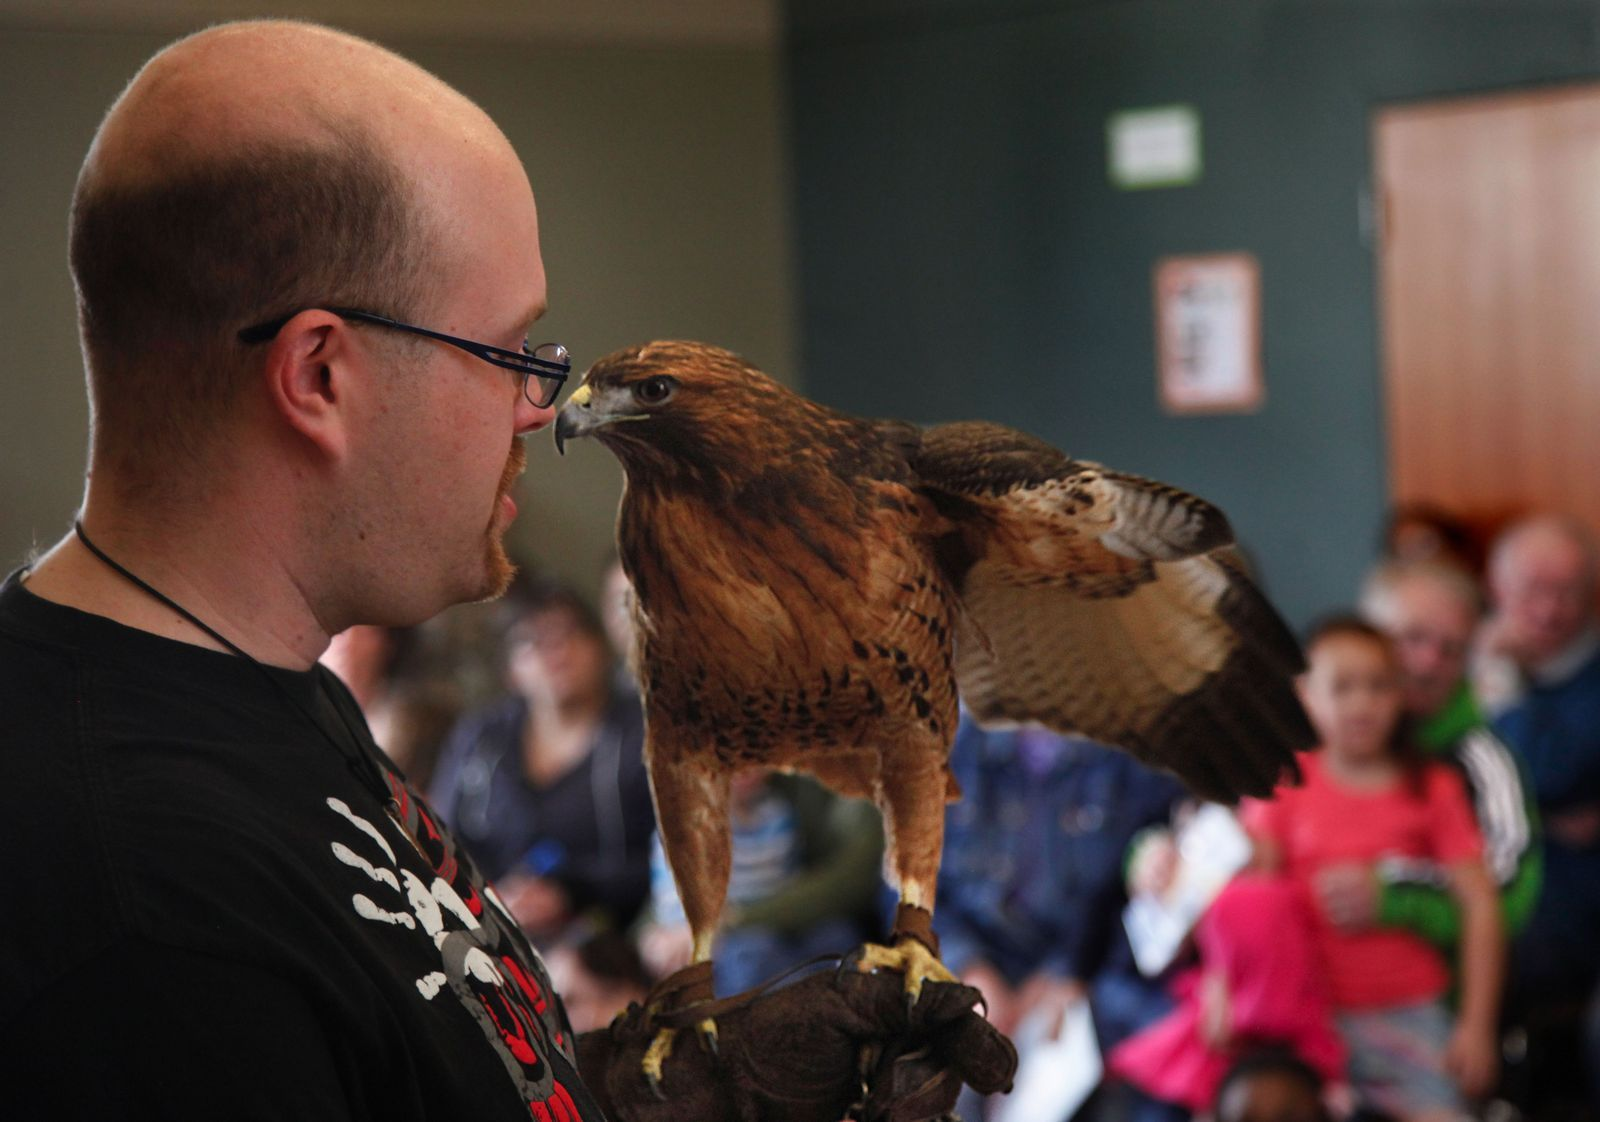 Dan Bates / The HeraldSarvey Wildlife Center volunteer Robert Lee holds a red-tailed hawk with only one wing Friday at the Snohomish Library. Having lost a wing, the hawk will remain at Sarvey for the rest of its life, Lee said.